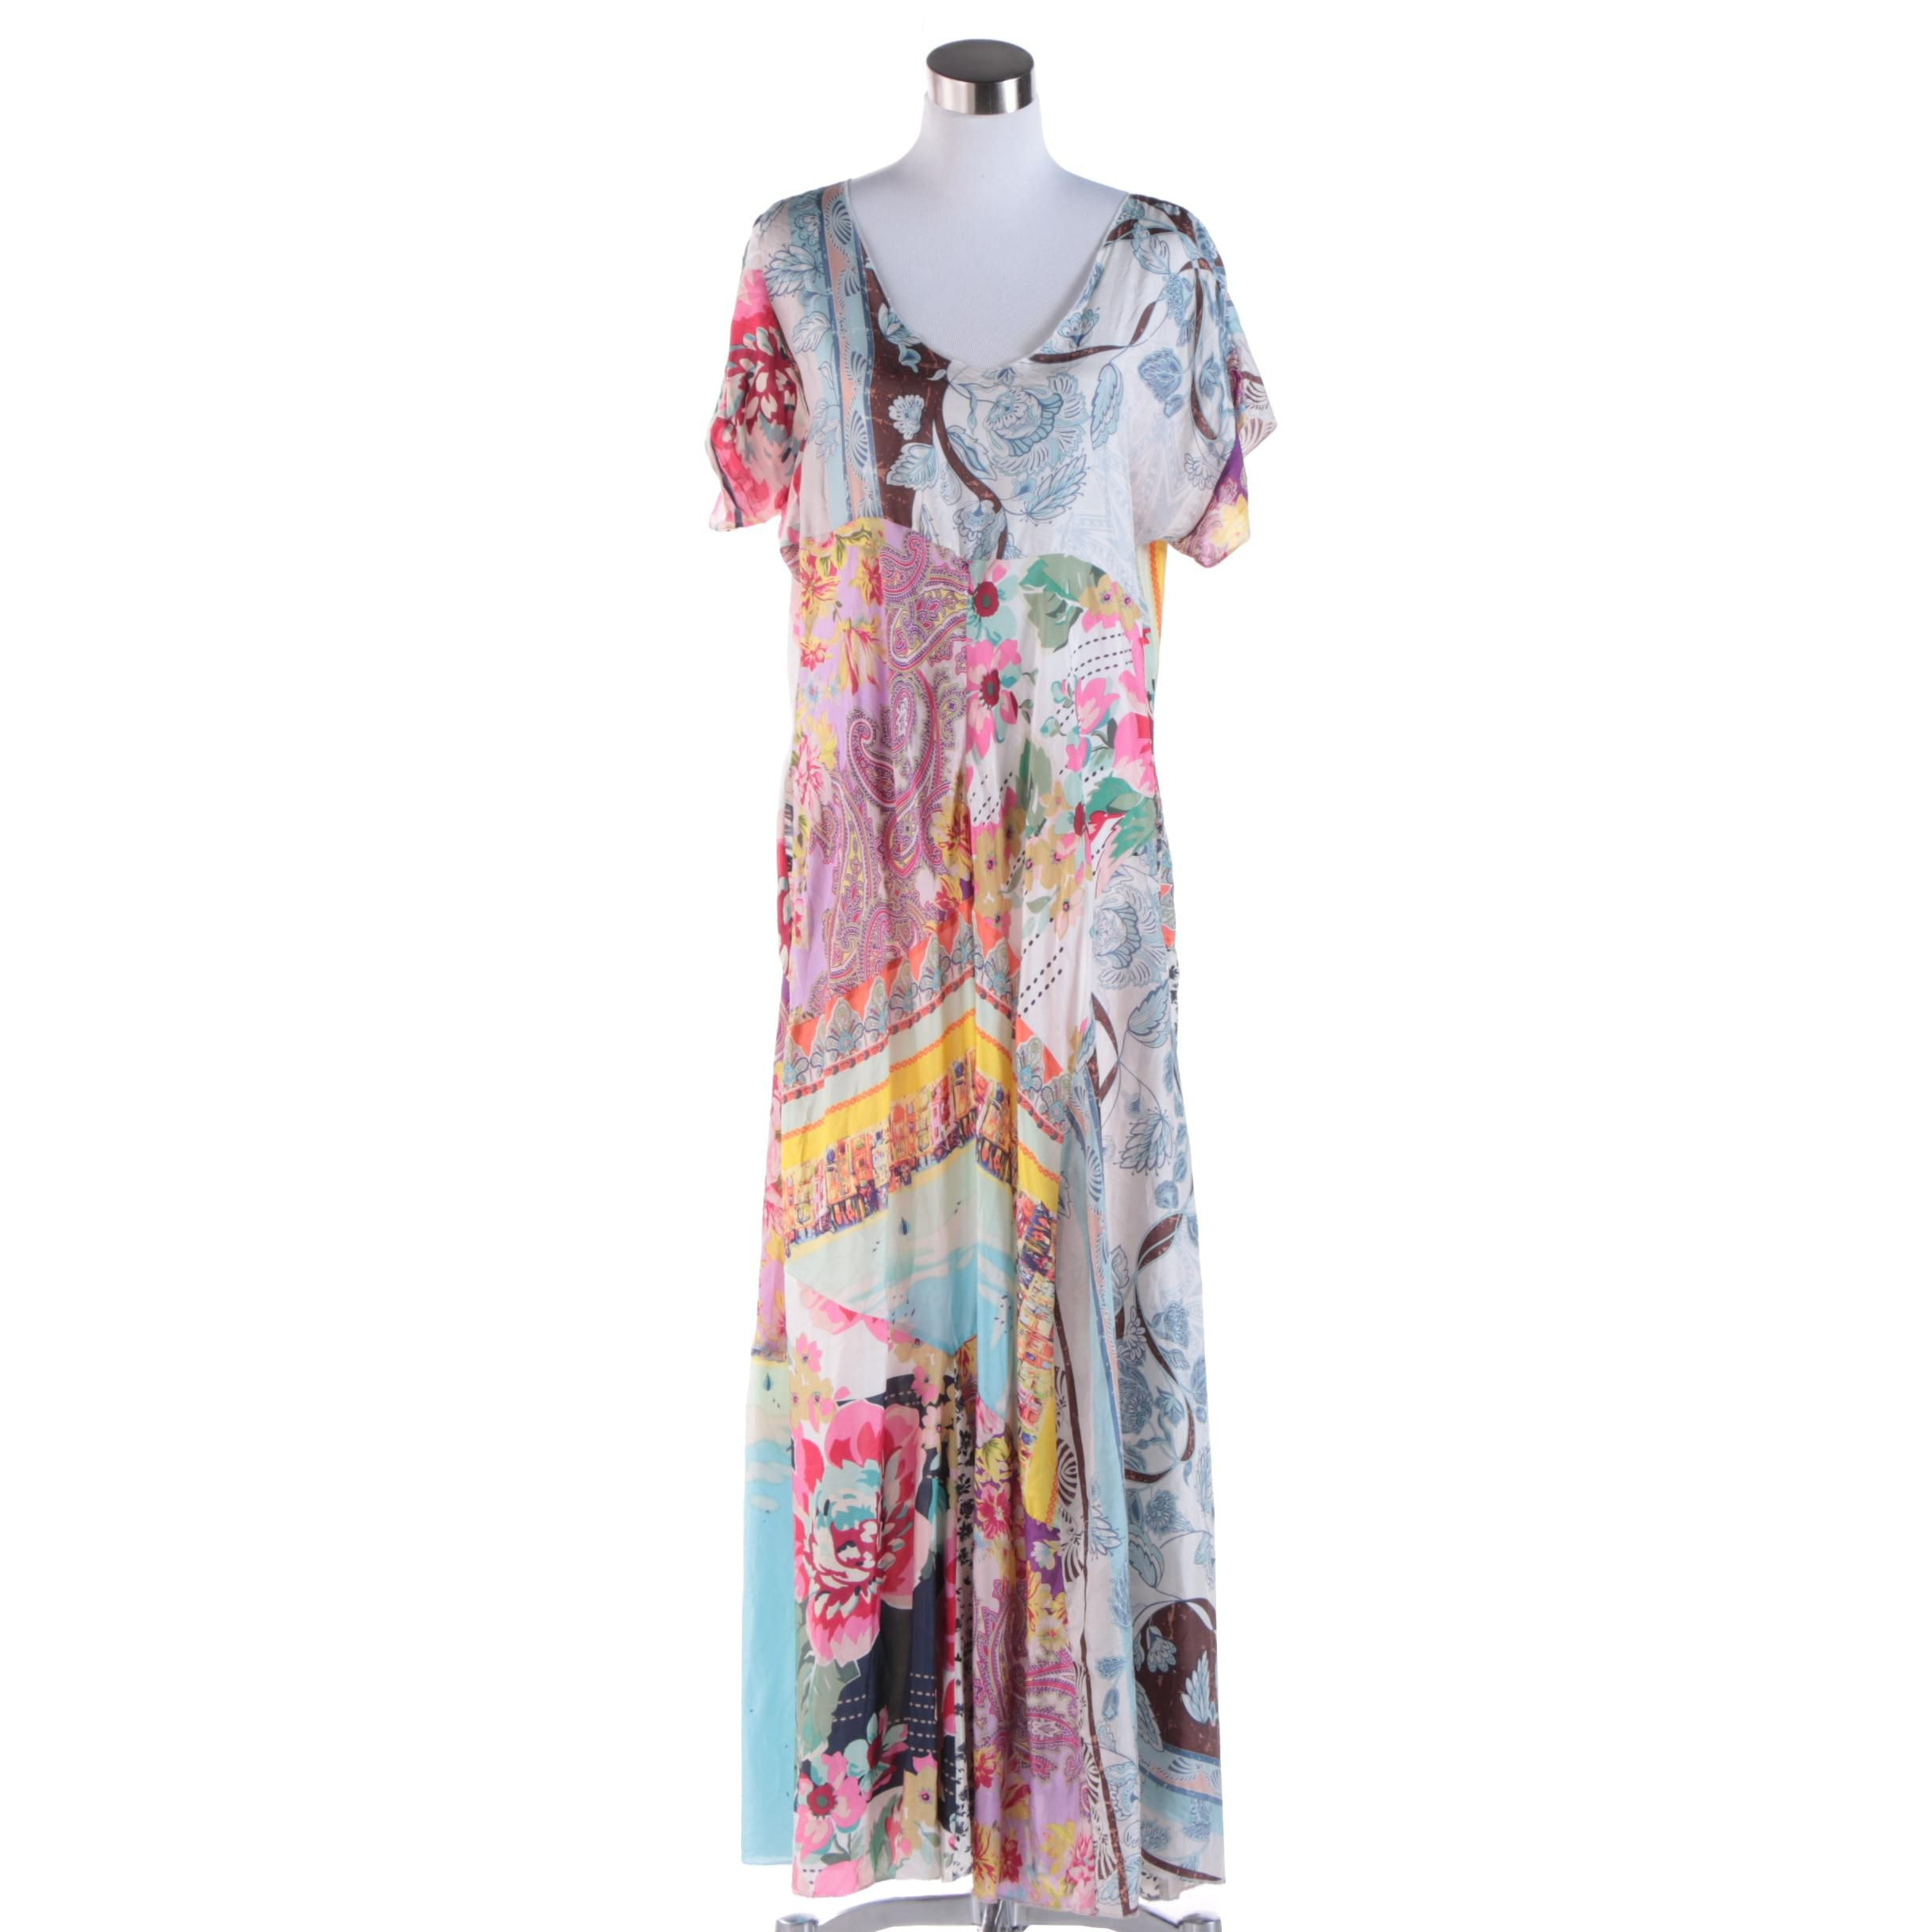 Women's Johnny Was Silk Floral Print Maxi Dress